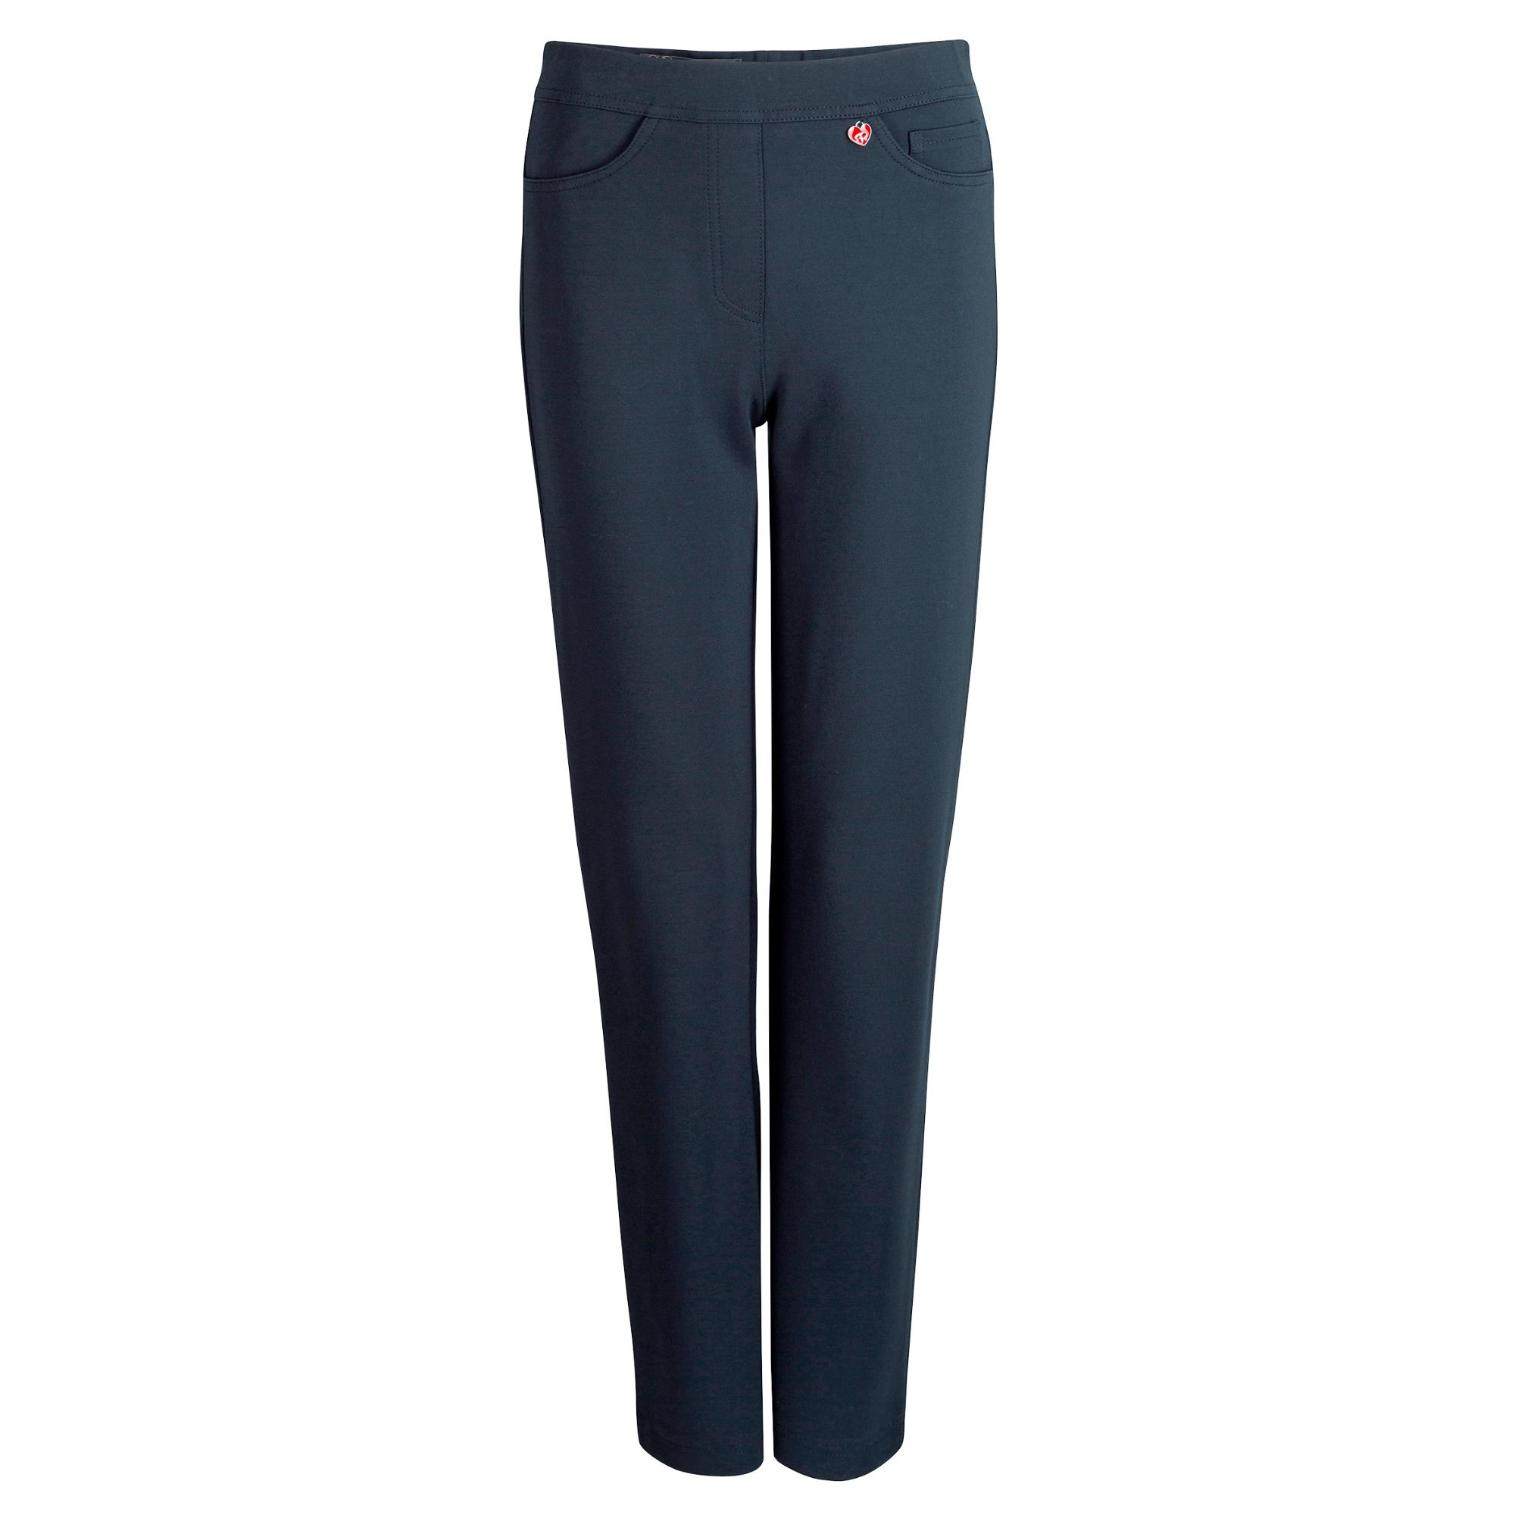 Relaxed by Toni Alice Hose in Farbe marine günstig online kaufen